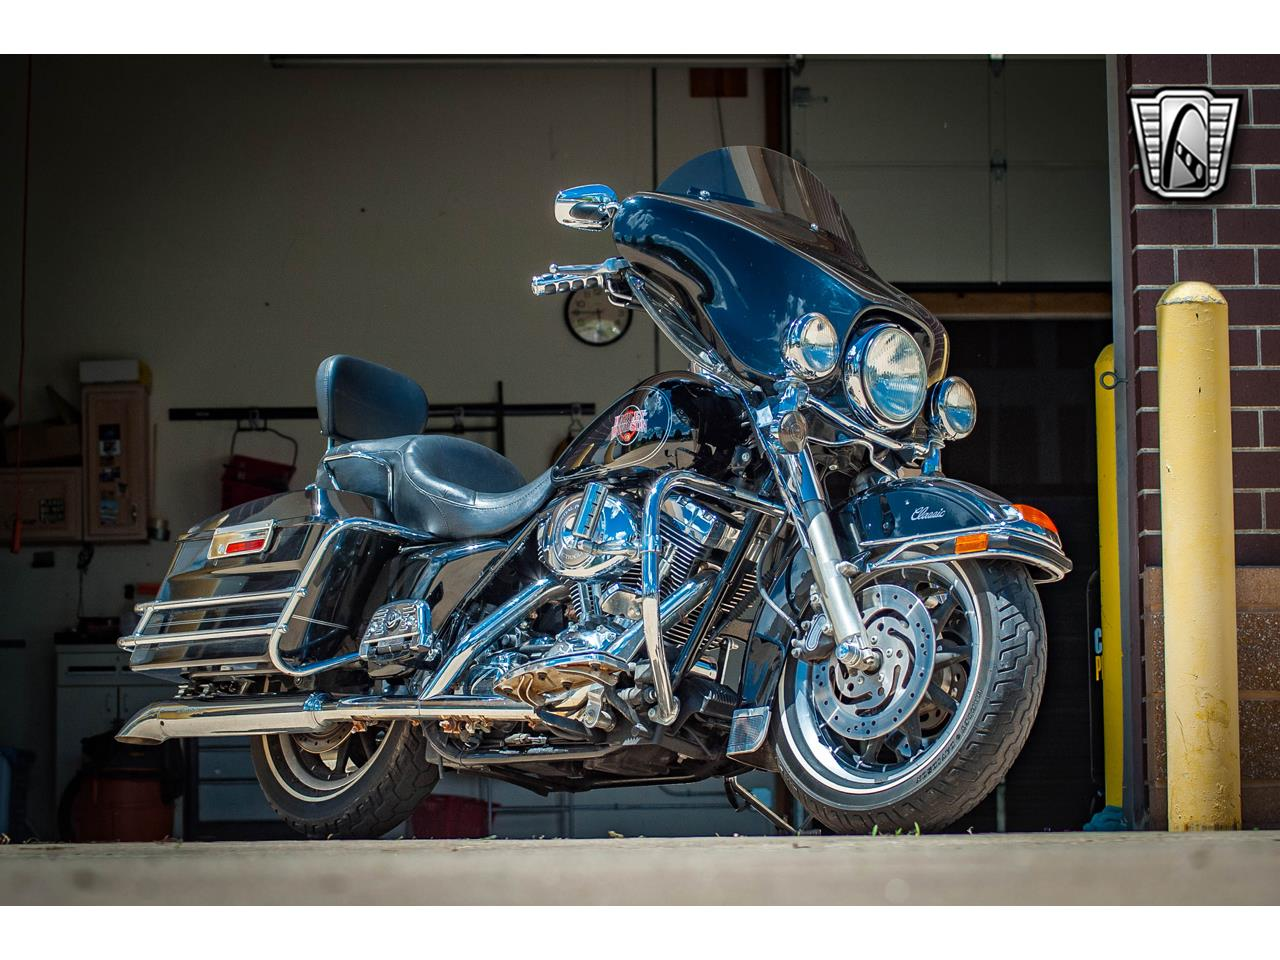 2004 Harley-Davidson Motorcycle for sale in O'Fallon, IL – photo 8